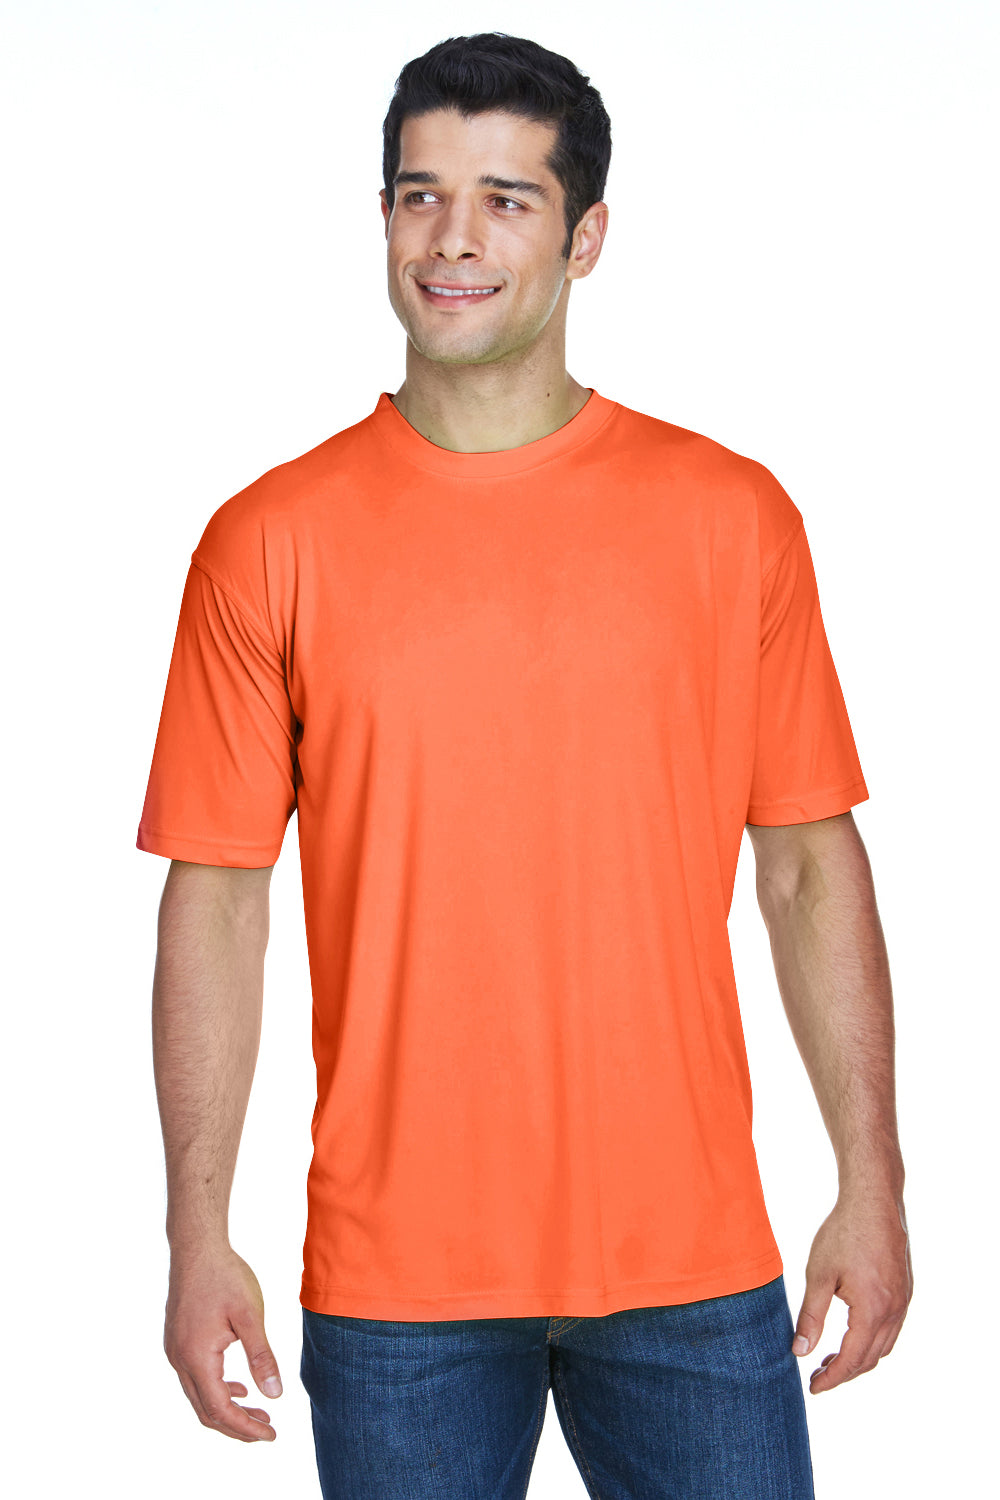 UltraClub 8420 Mens Cool & Dry Performance Moisture Wicking Short Sleeve Crewneck T-Shirt Bright Orange Front